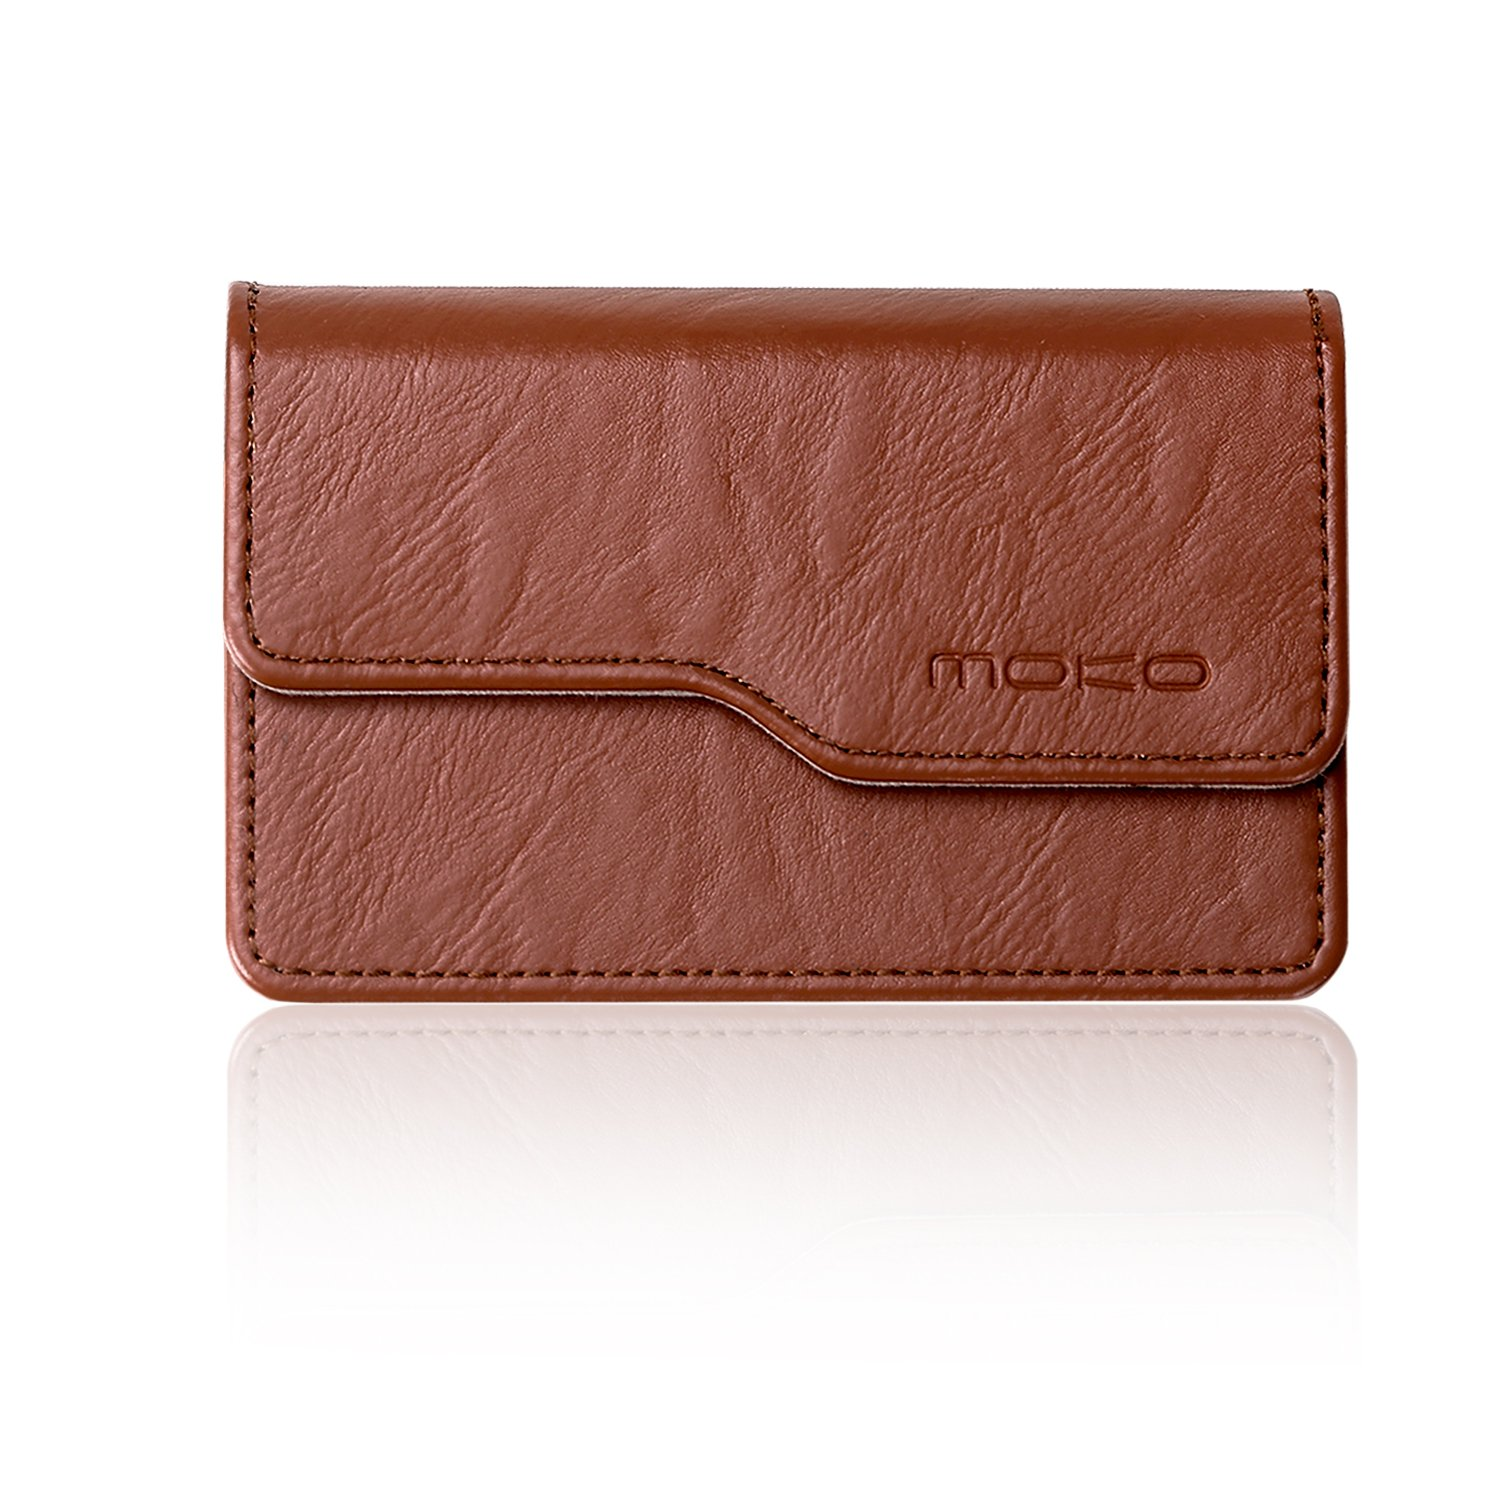 Business Card Holder ID Card Case - MoKo Premium PU Leather Universal Card Case Wallet Organizer with Magnetic Shut, Brown MK-0705